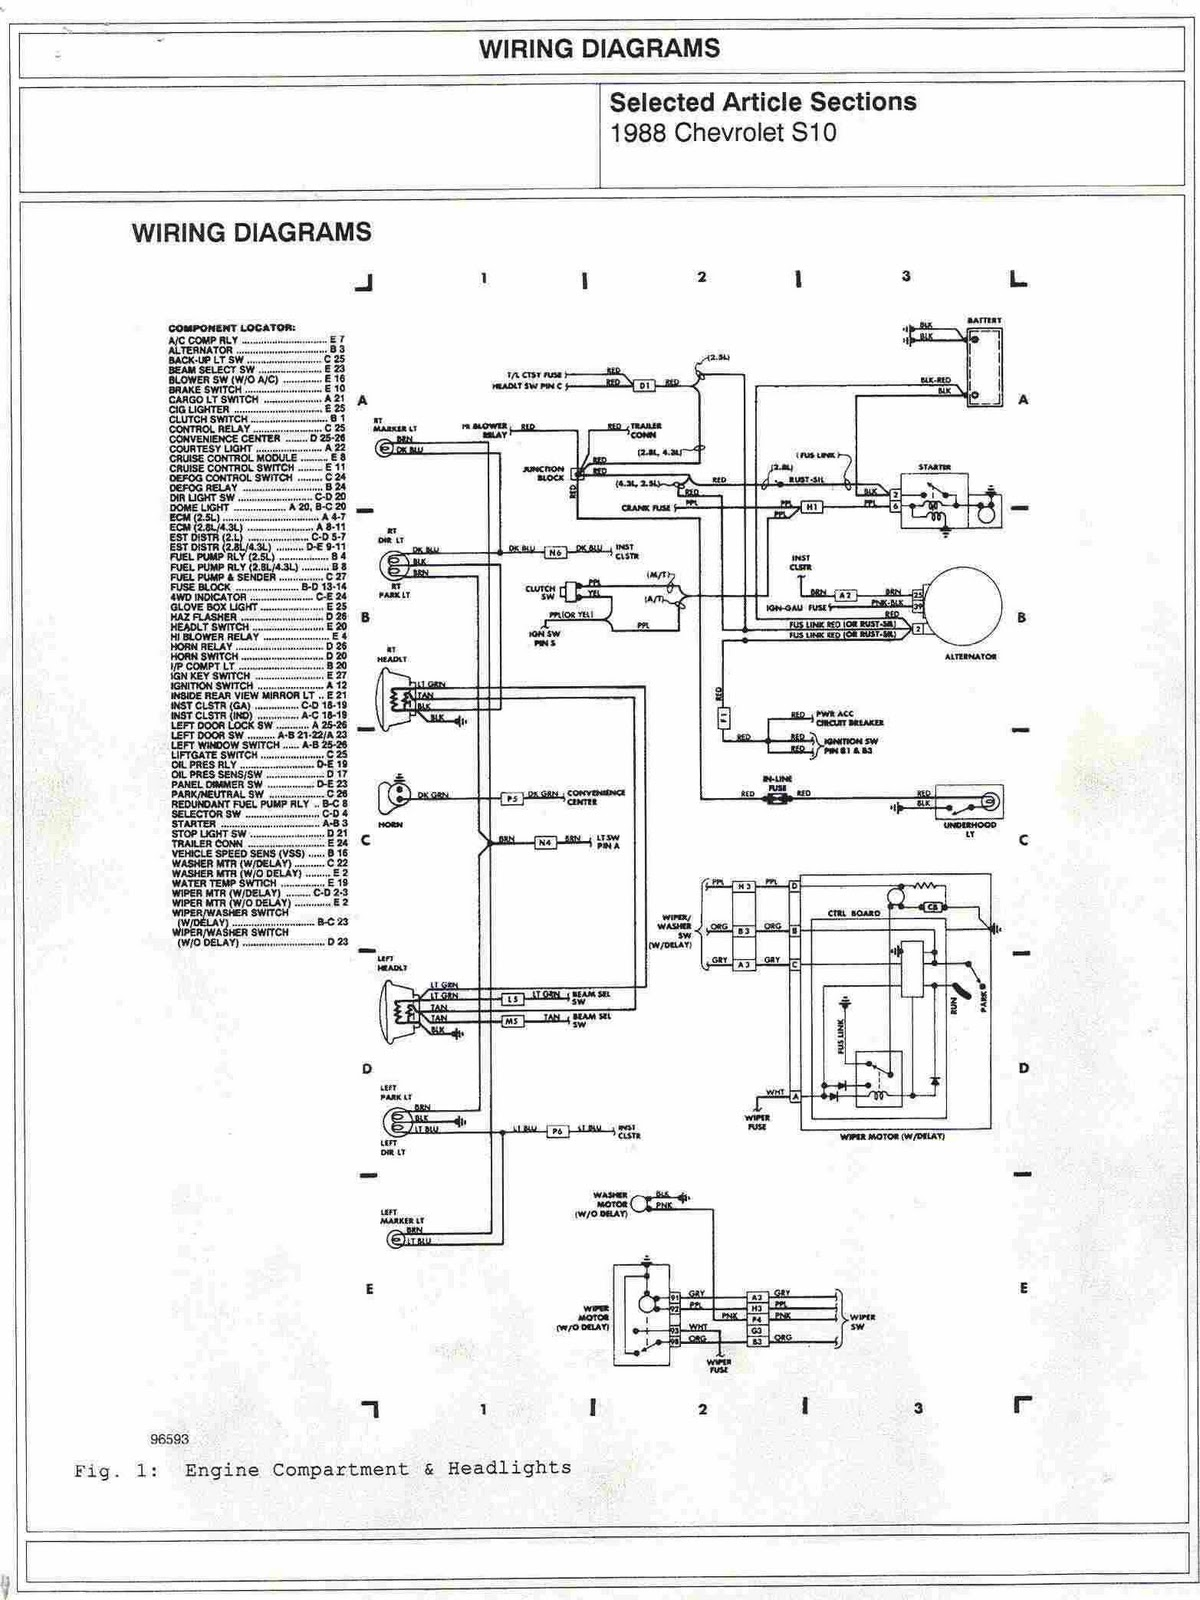 97 S10 Stop Turn Tail Light Wiring Diagram 42 1993 Chevy Fuse Box Schematic Diagrams 1988 Chevrolet Engine Compartment And Headlights